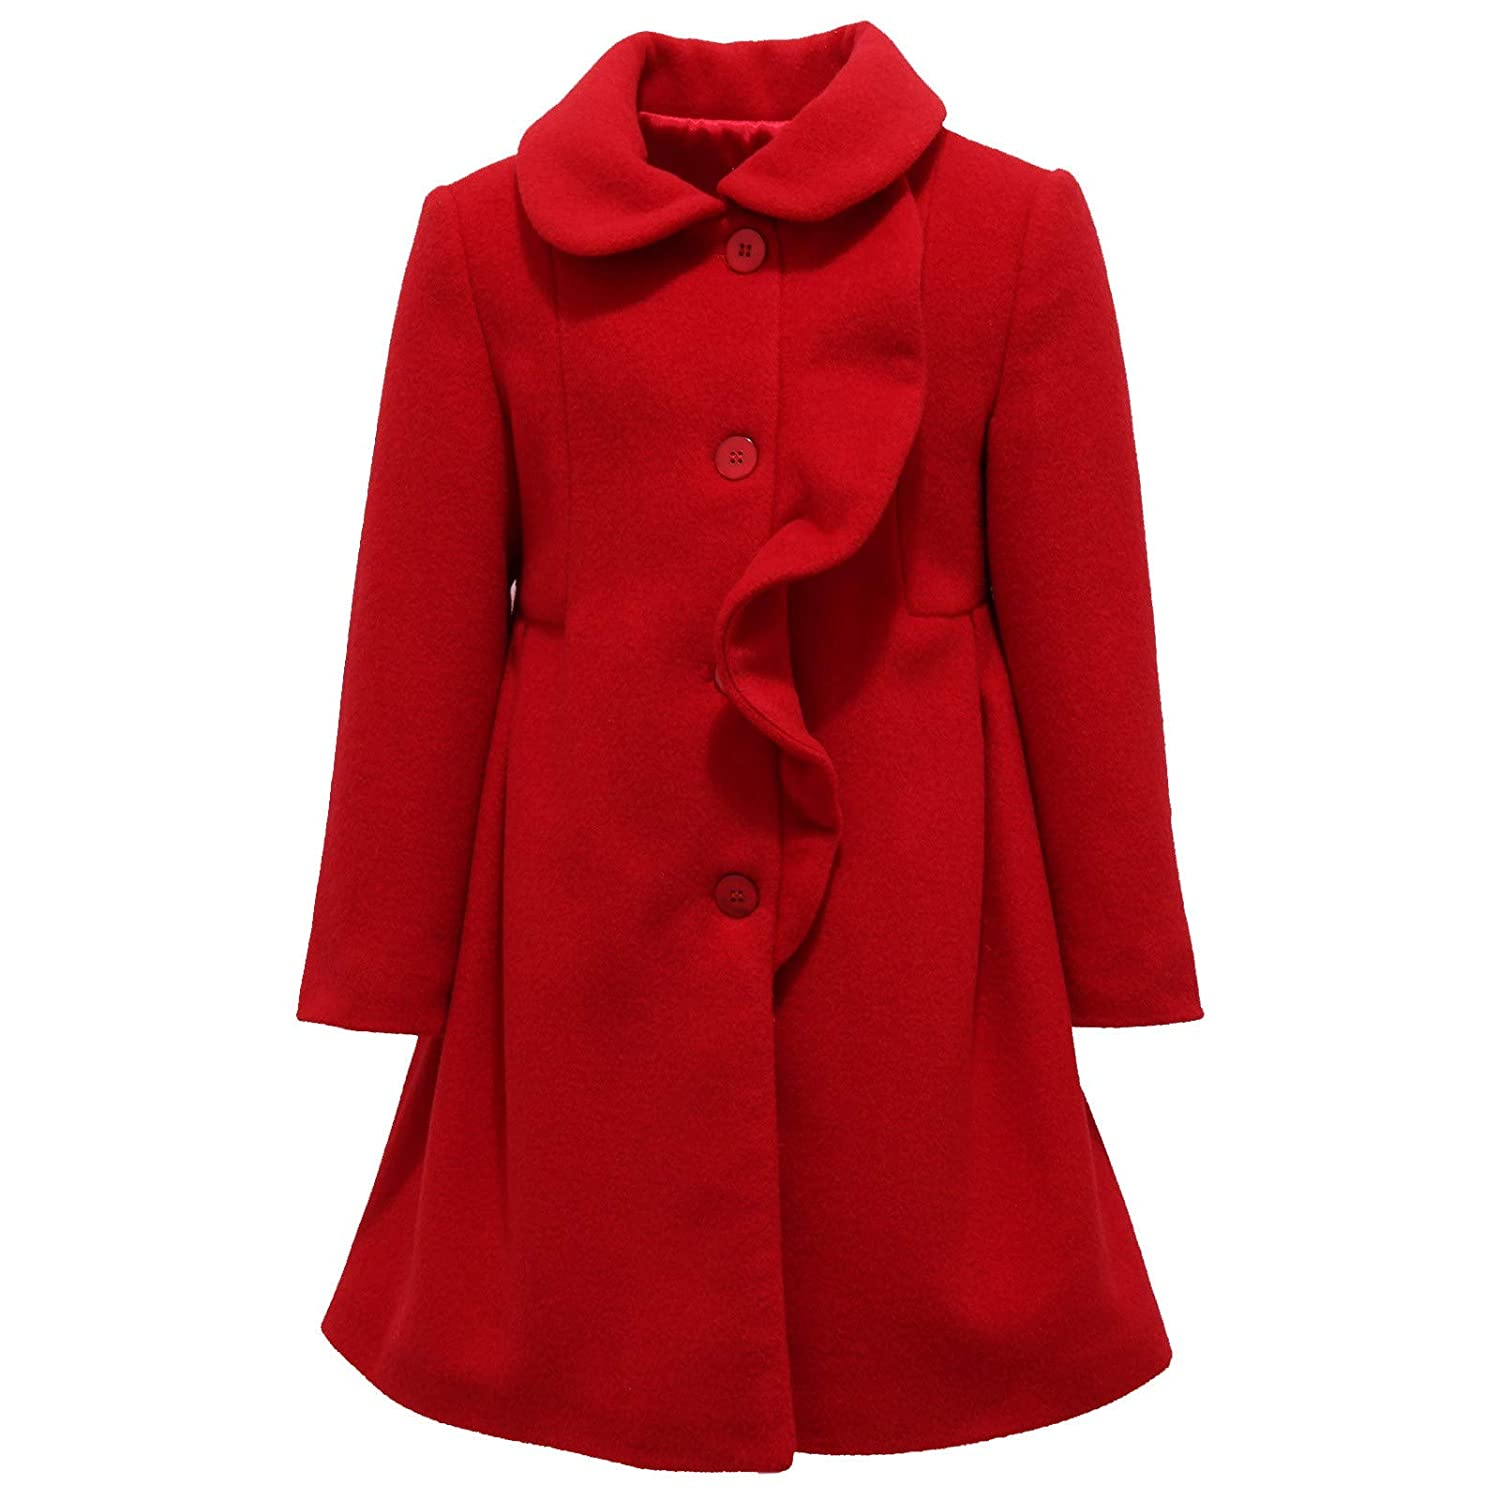 Rouge 6 Years   A. 8926Y Cappotto Bimba Girl rouge Wool Blend Coat veste